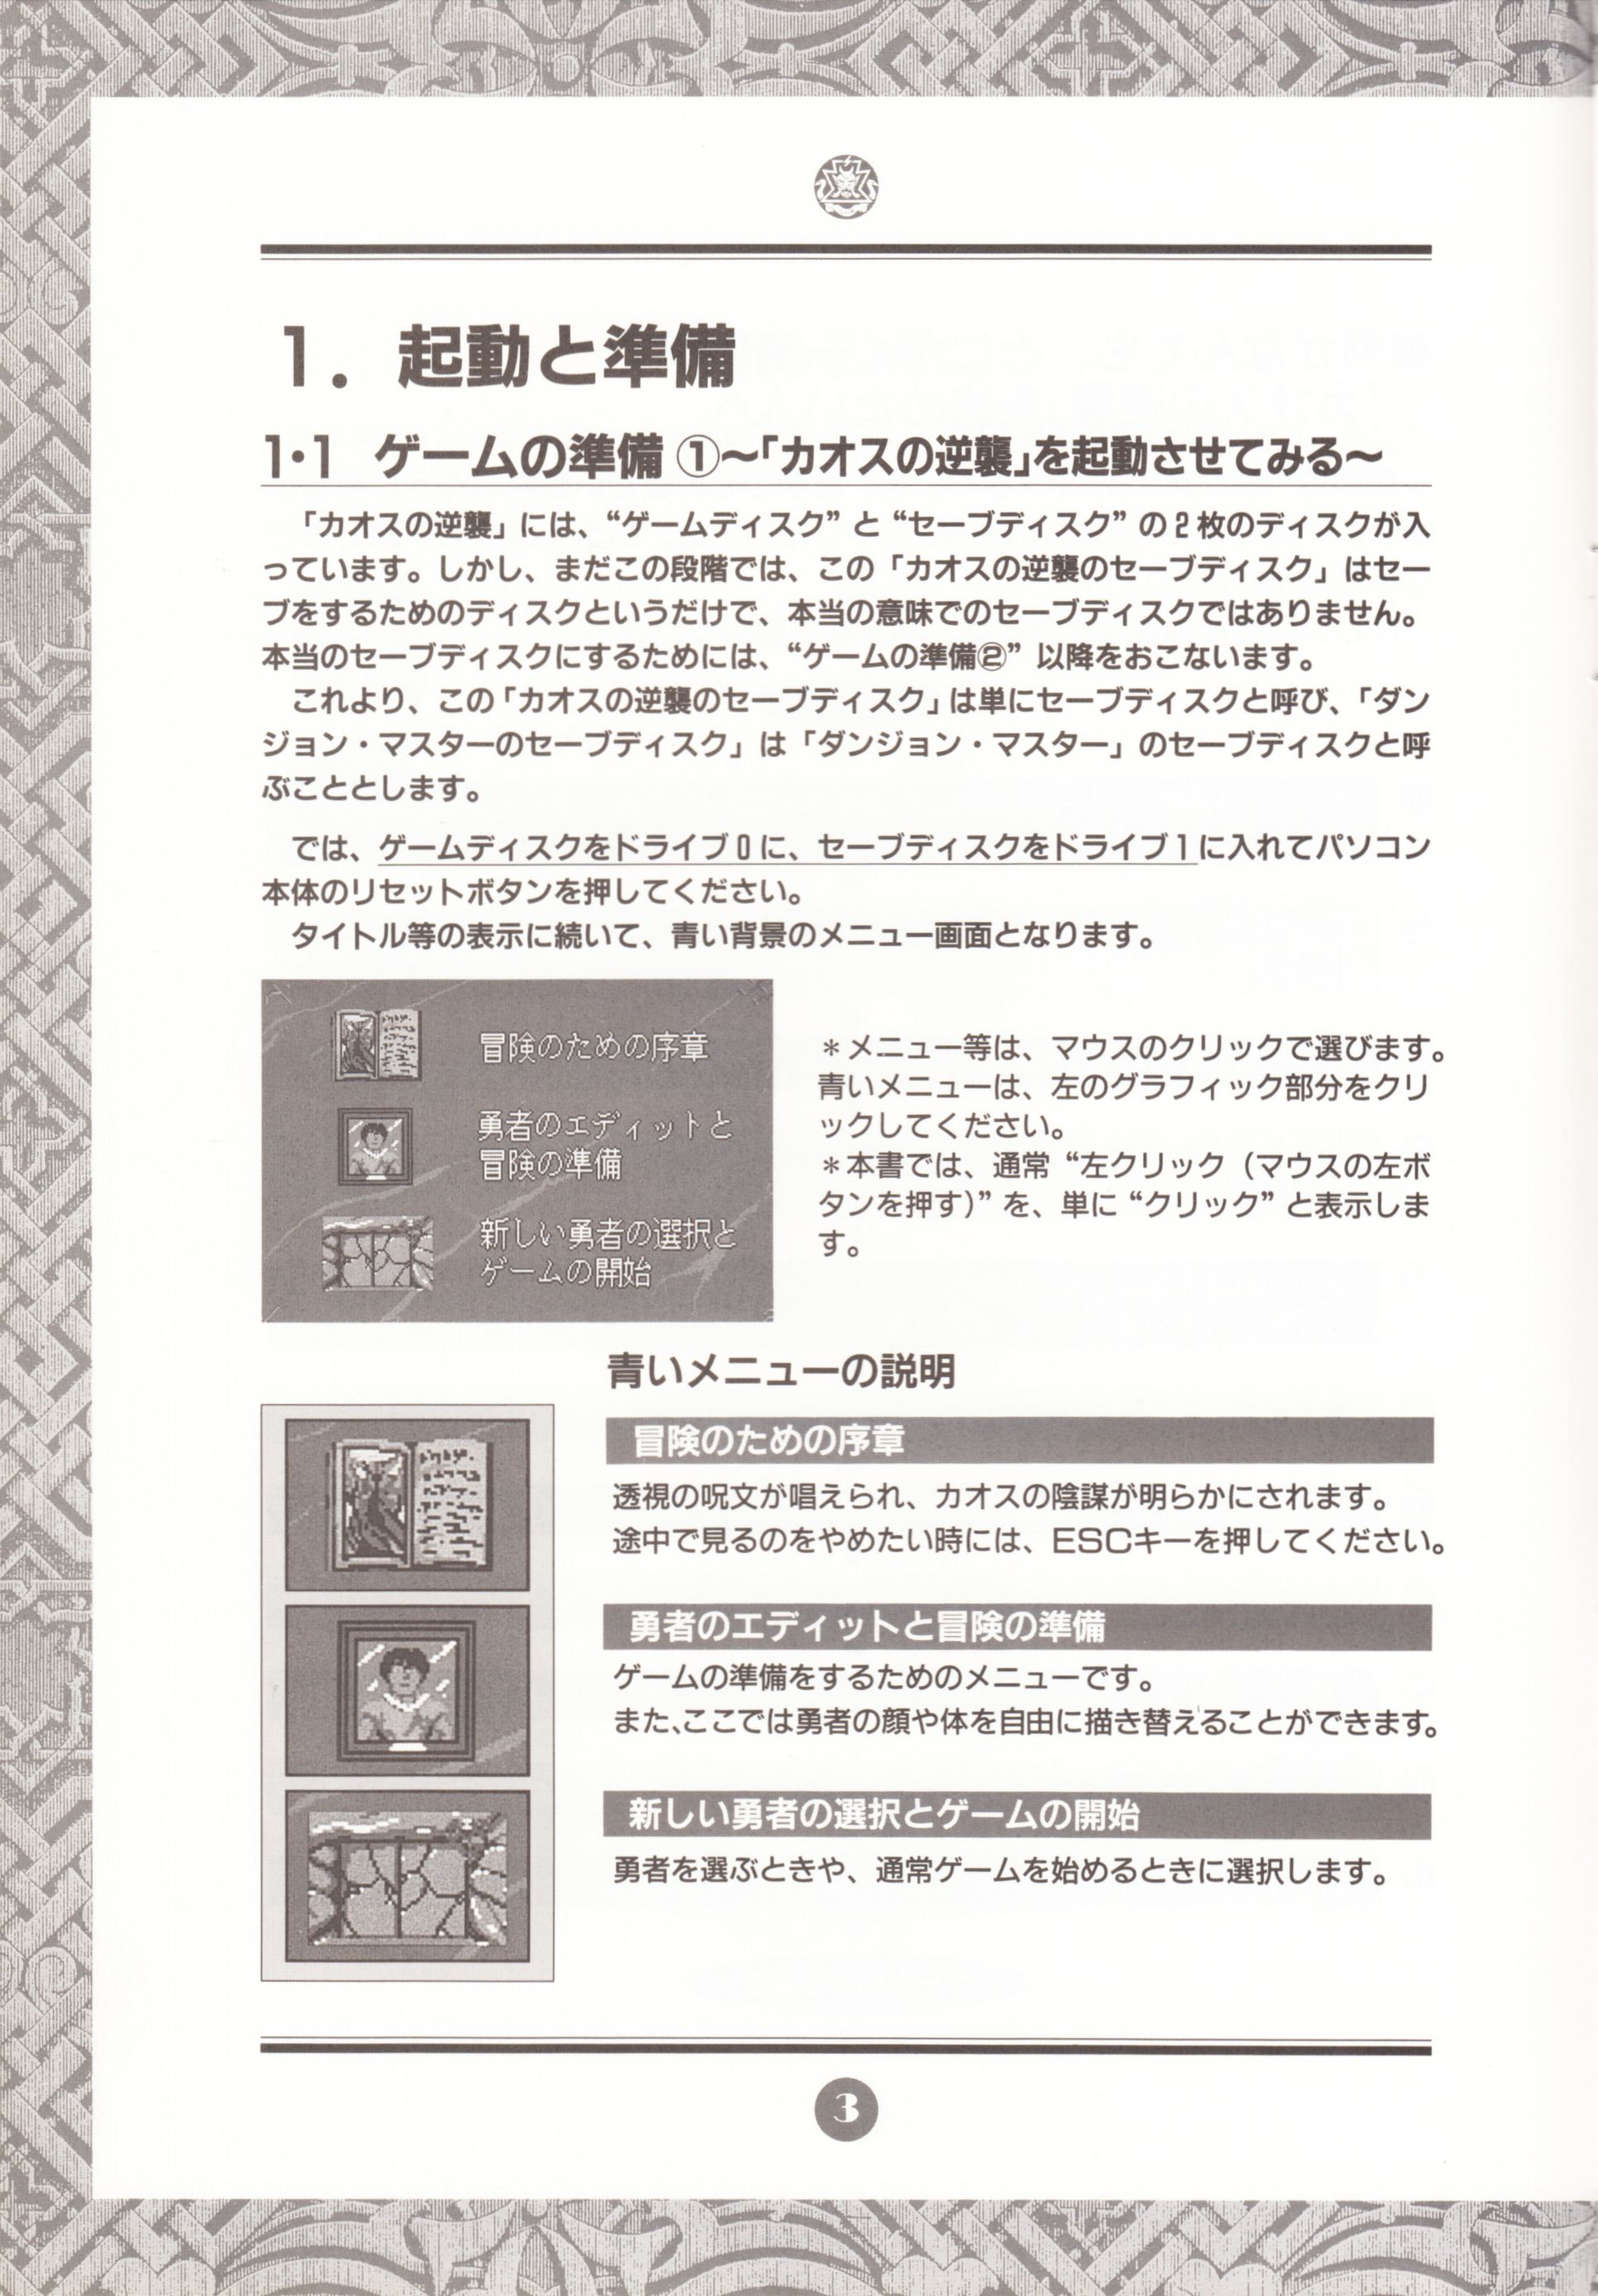 Game - Chaos Strikes Back - JP - X68000 - An Operation Manual - Page 006 - Scan